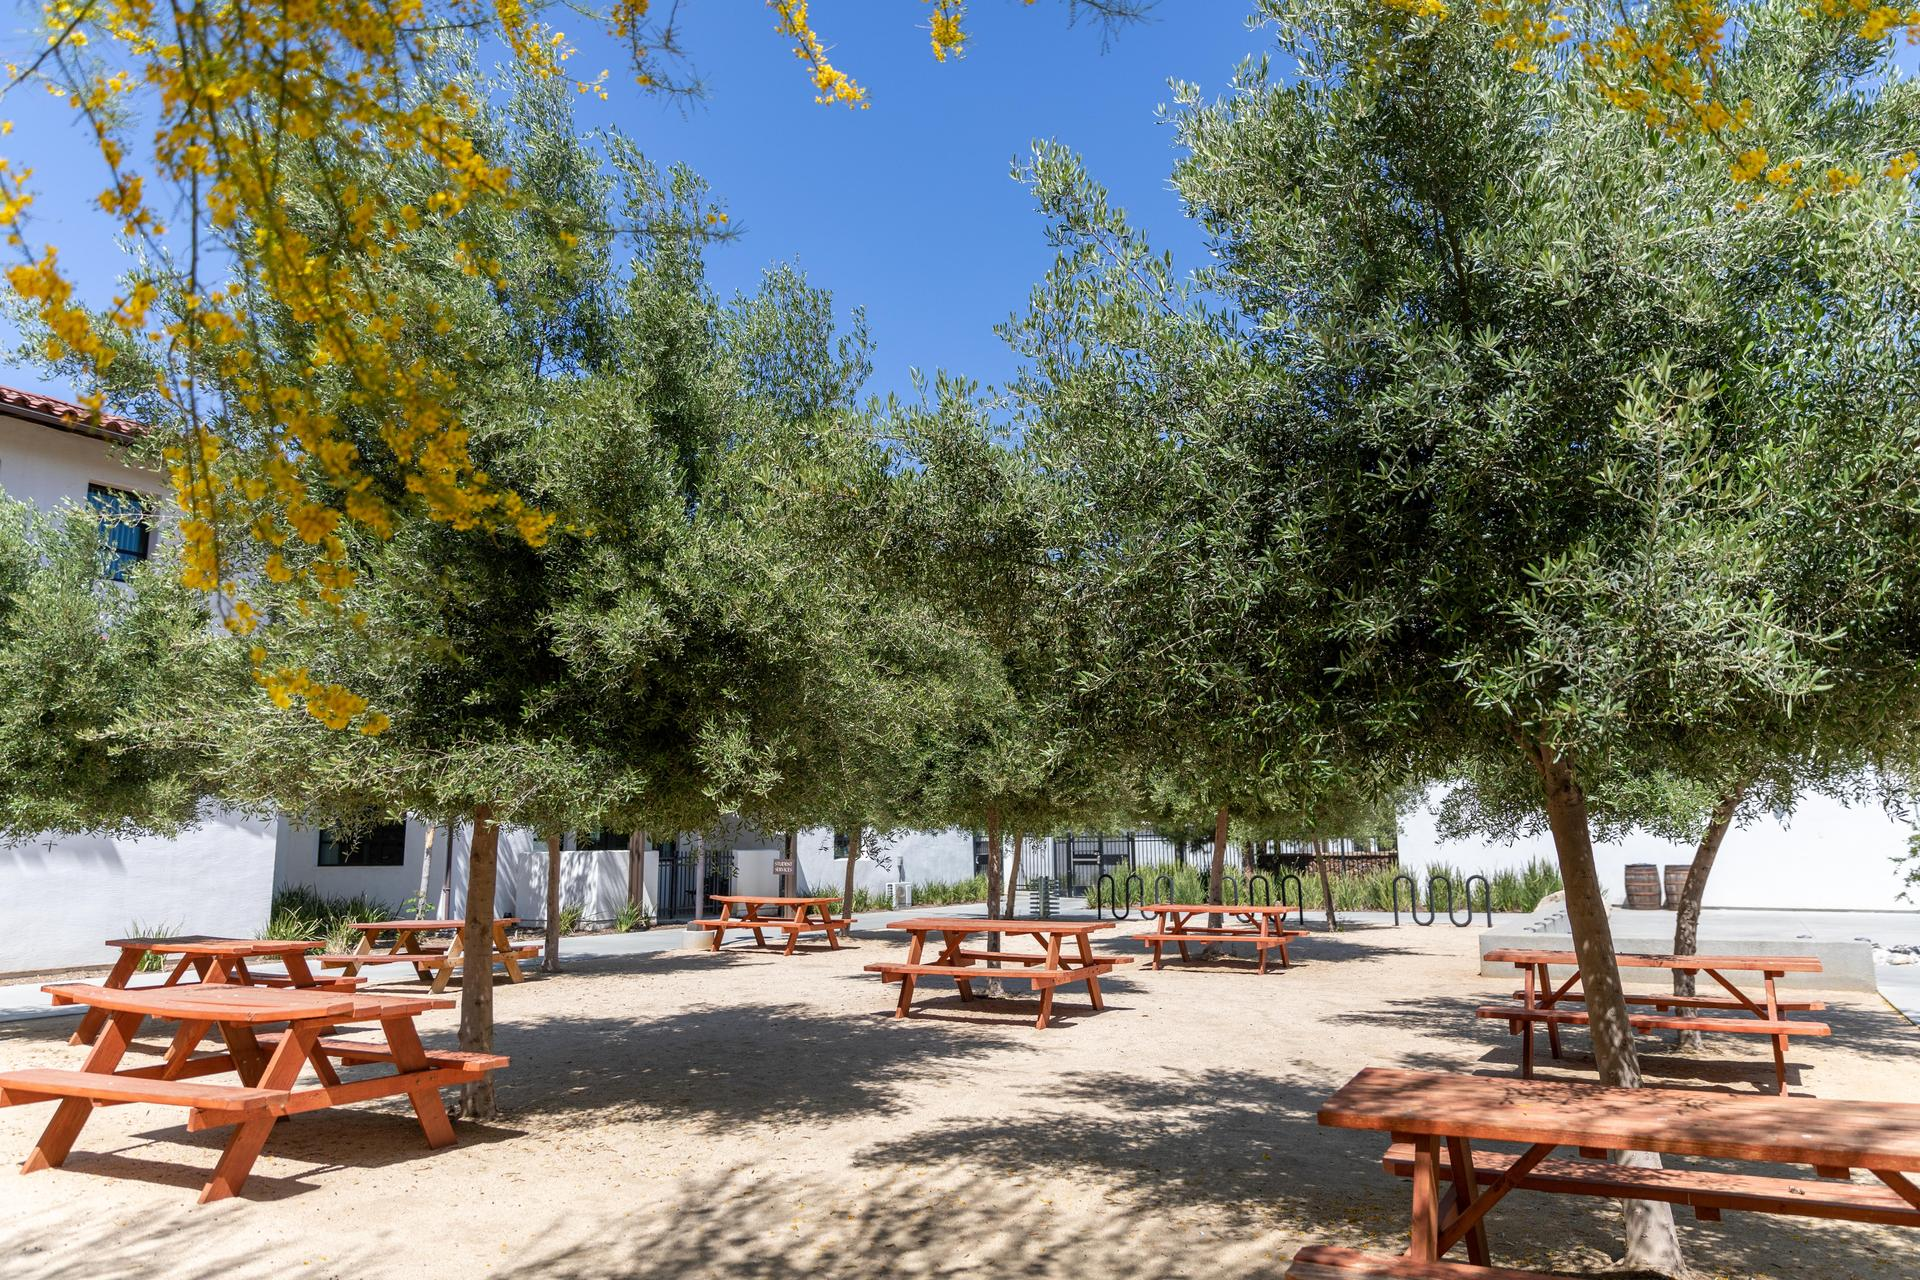 Olive grove on campus